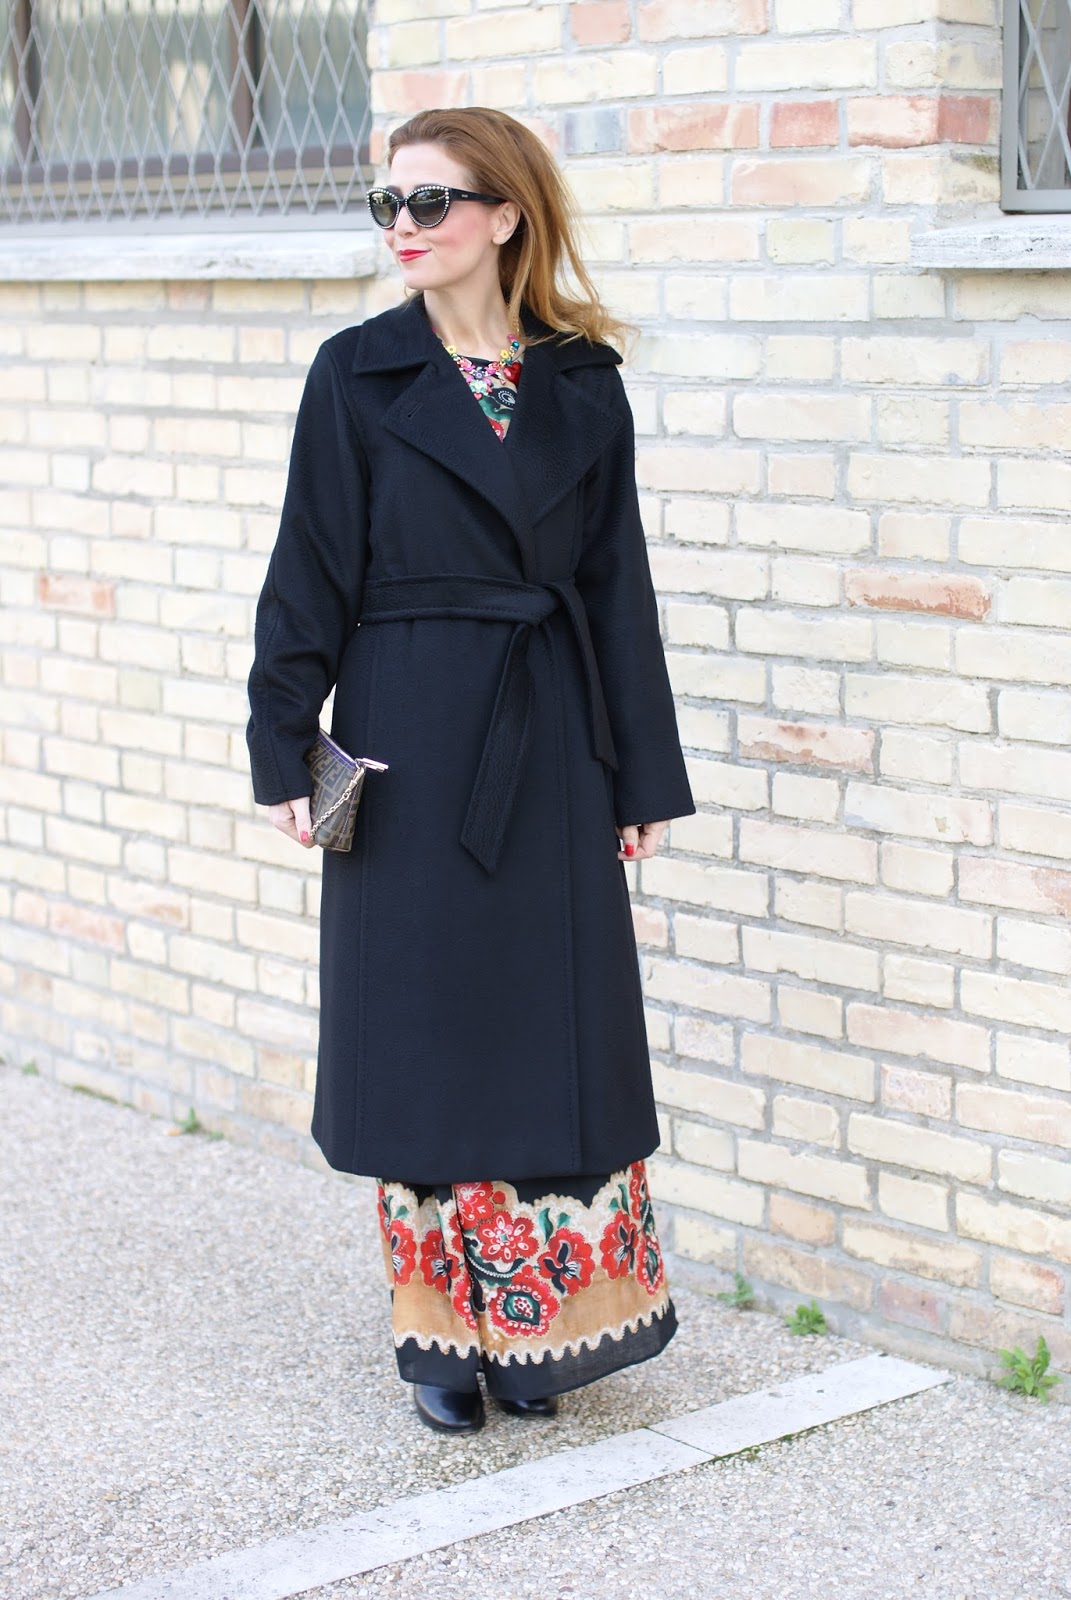 Max Mara Manuela camel coat, Red Valentino floral dress and Fendi Zucca clutch on Fashion and Cookies fashion blog, fashion blogger style